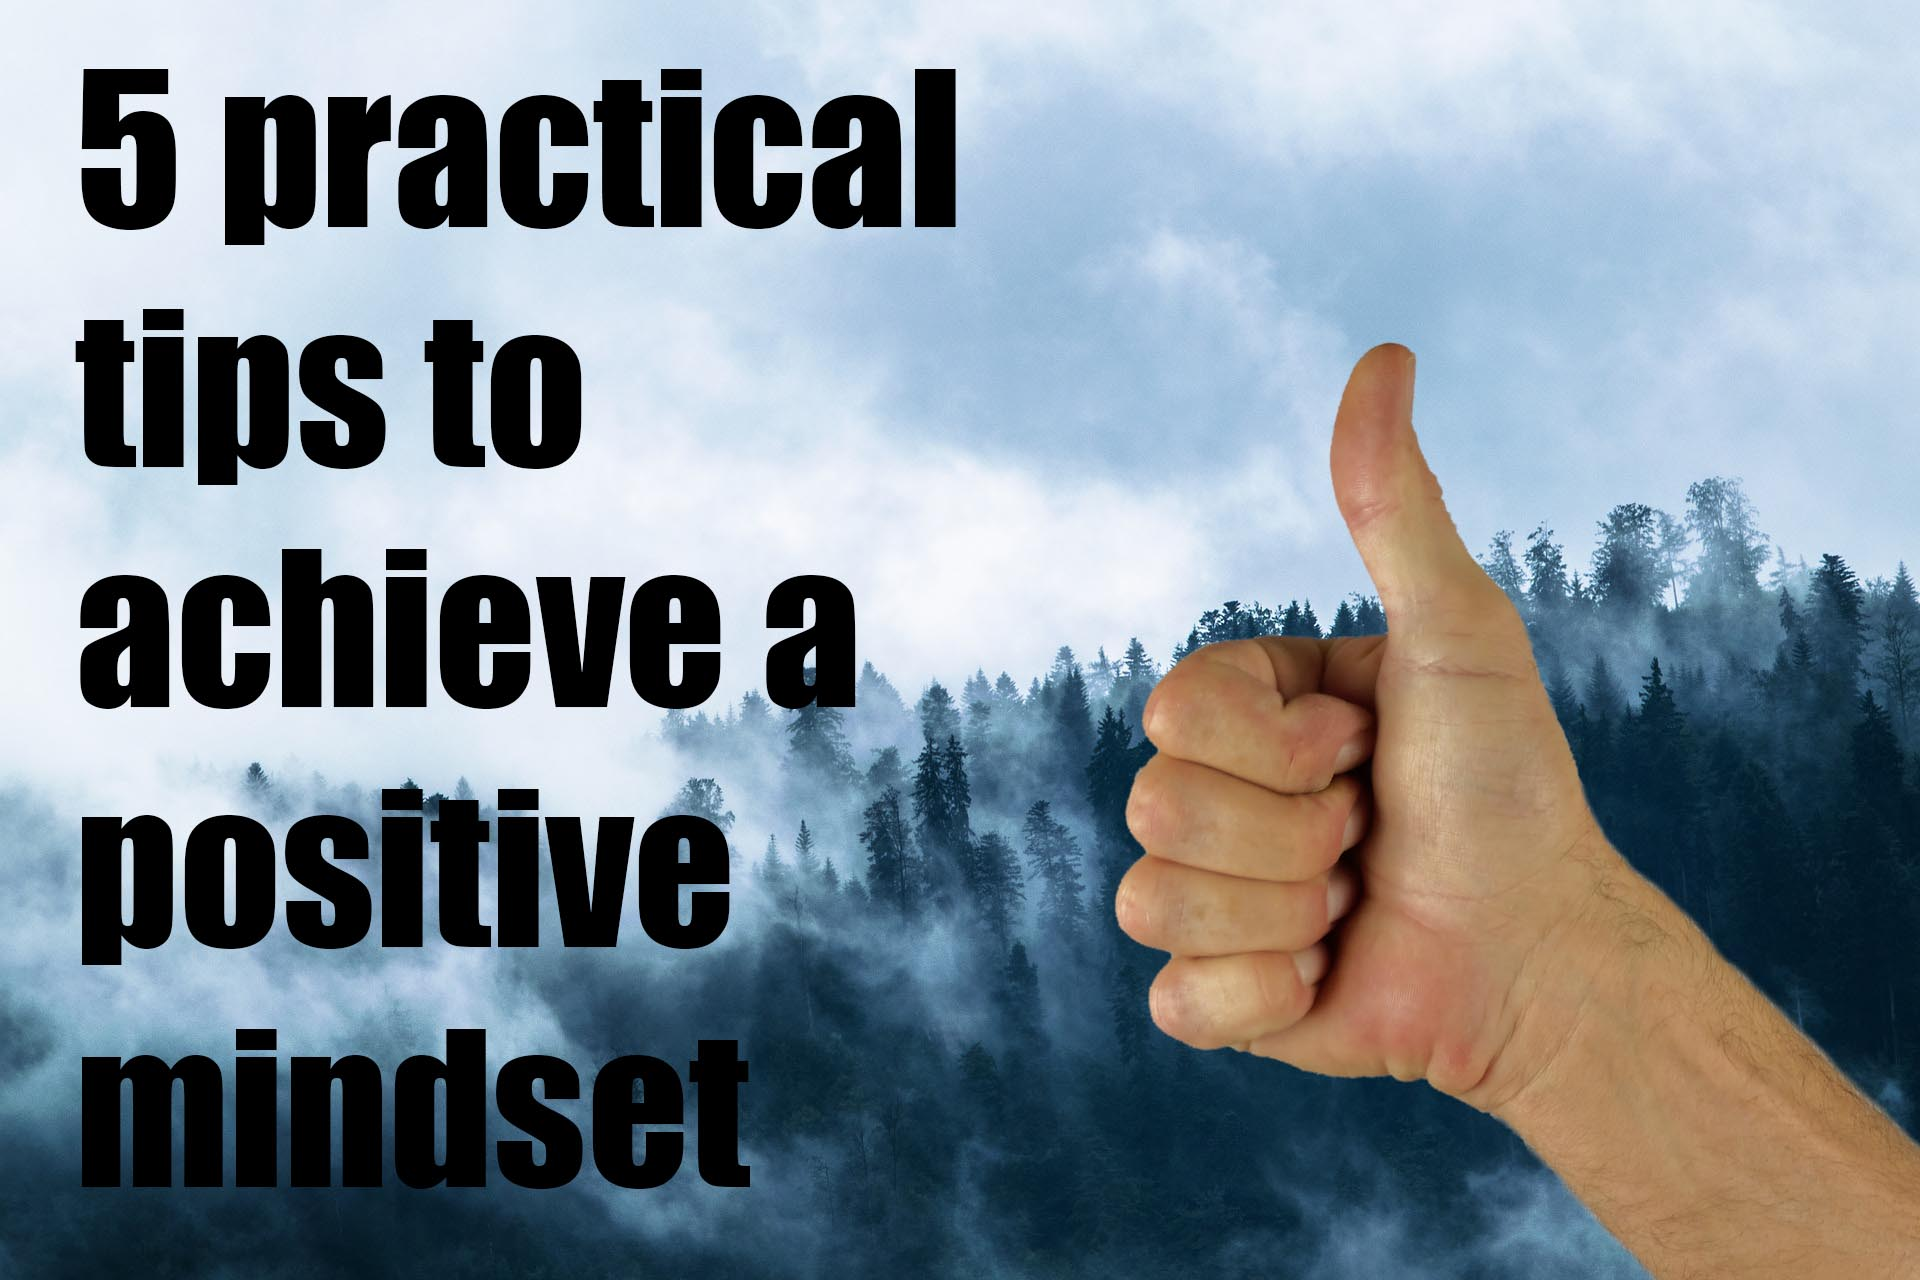 Five Practical Tips To Achieve A Positive Mindset